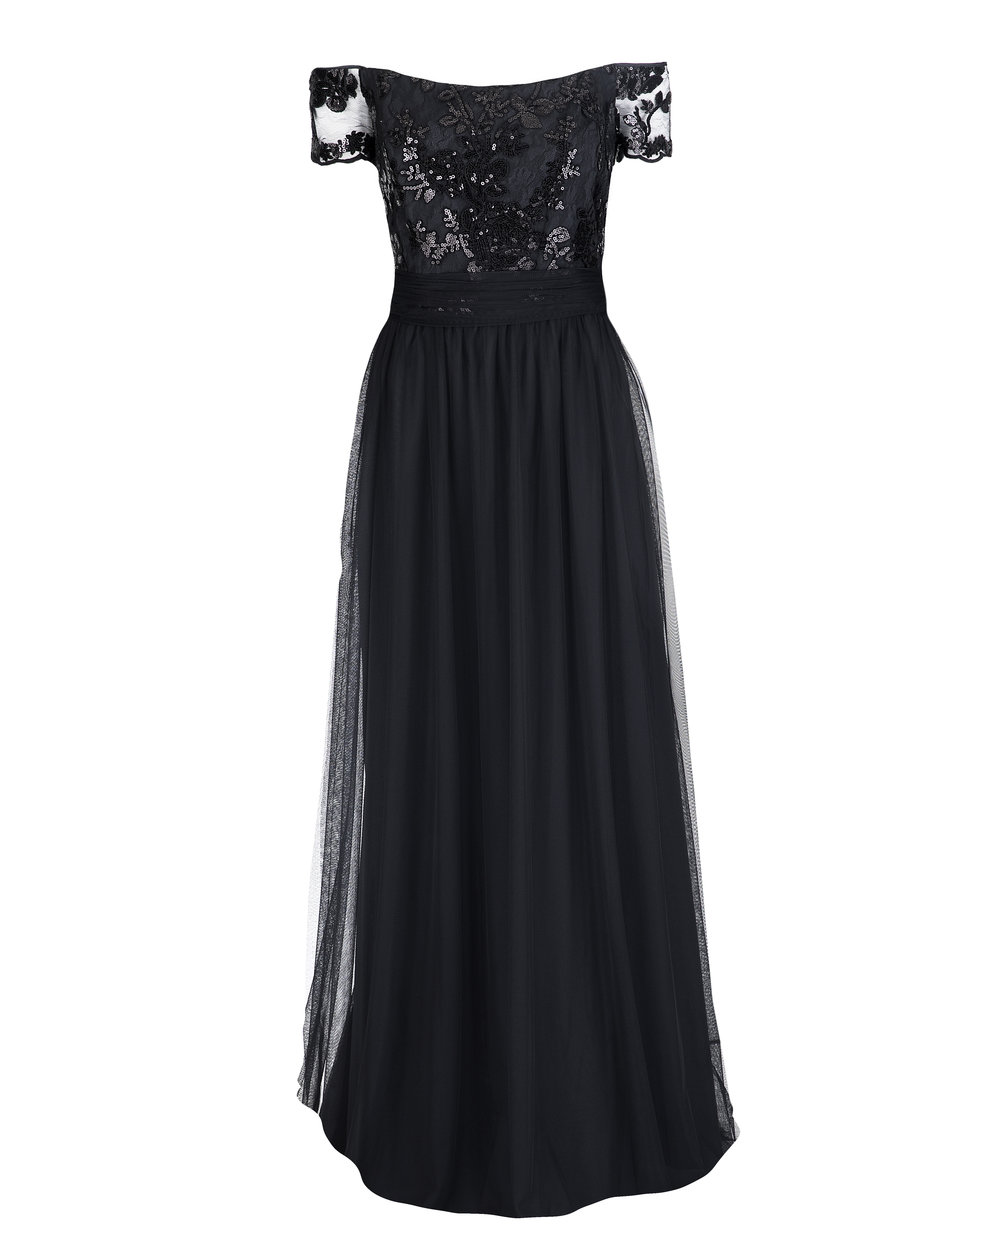 Amsale Ireland GB039 Black Sequin Lace